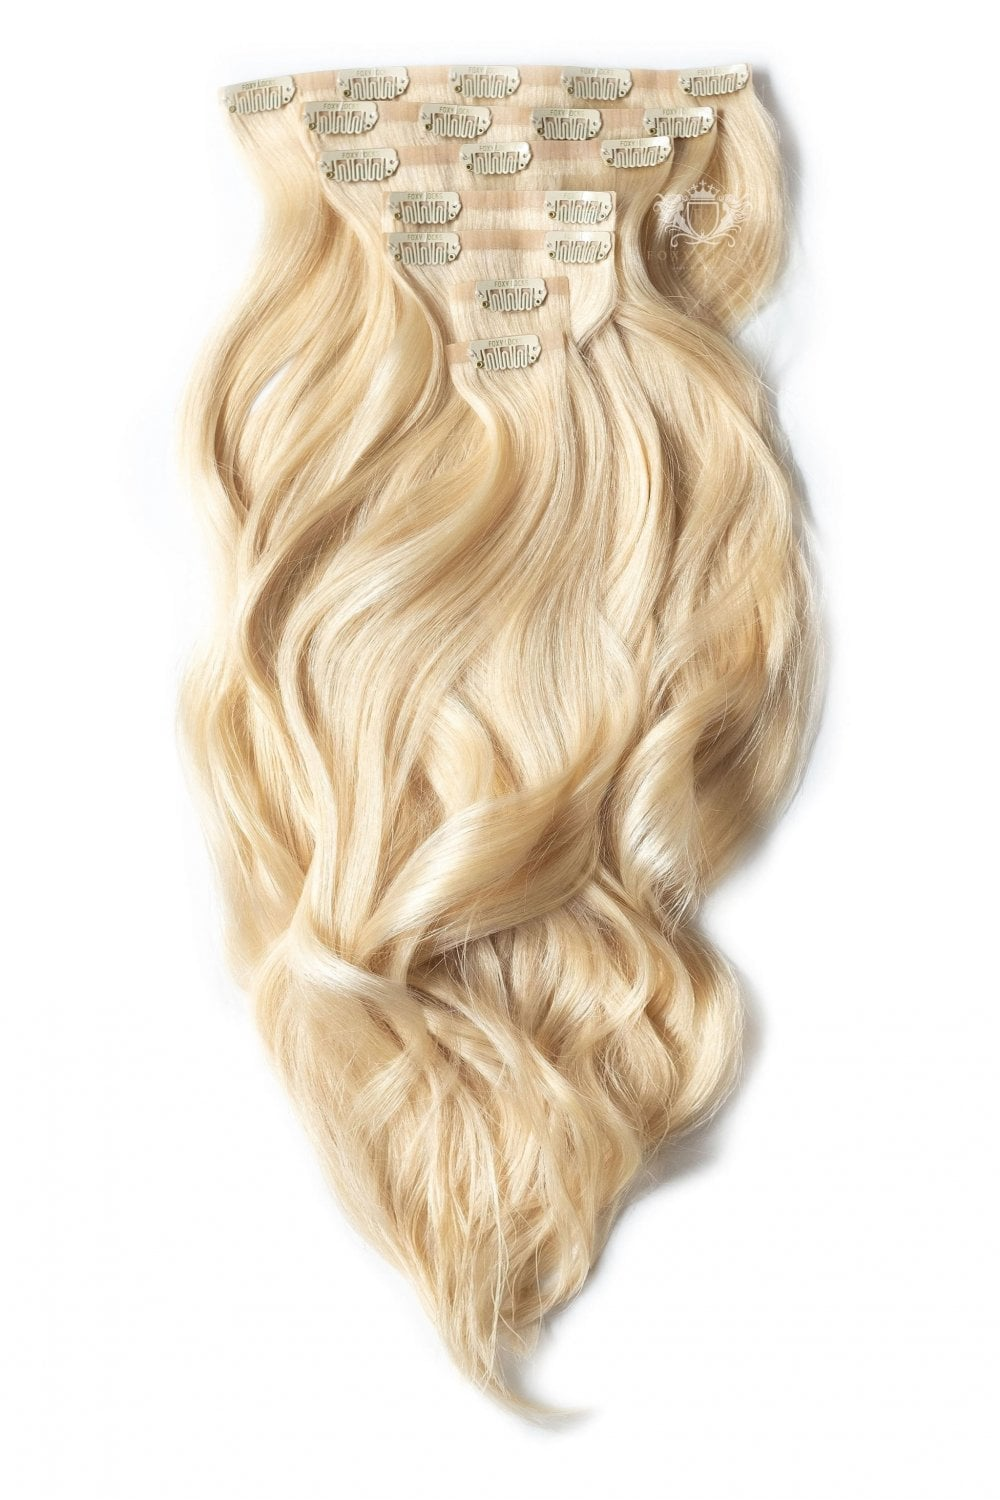 Clip In Hair Extensions Minnesota Human Hair Extensions